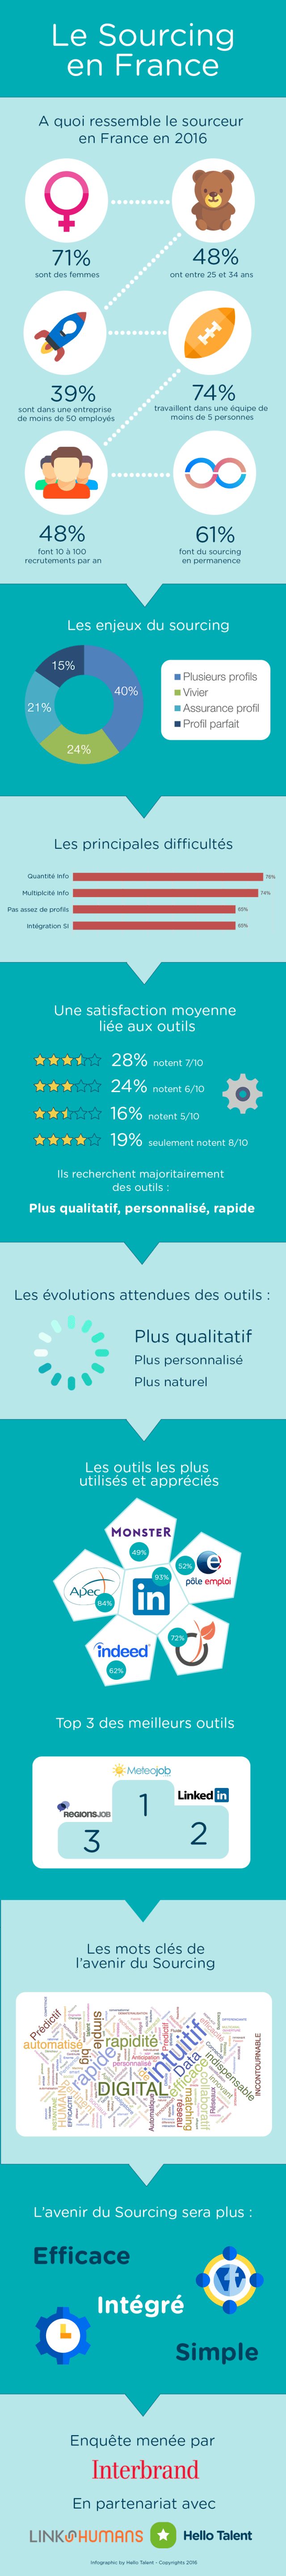 l'etude sourcing-en-france-infographic-hello-talent-v2